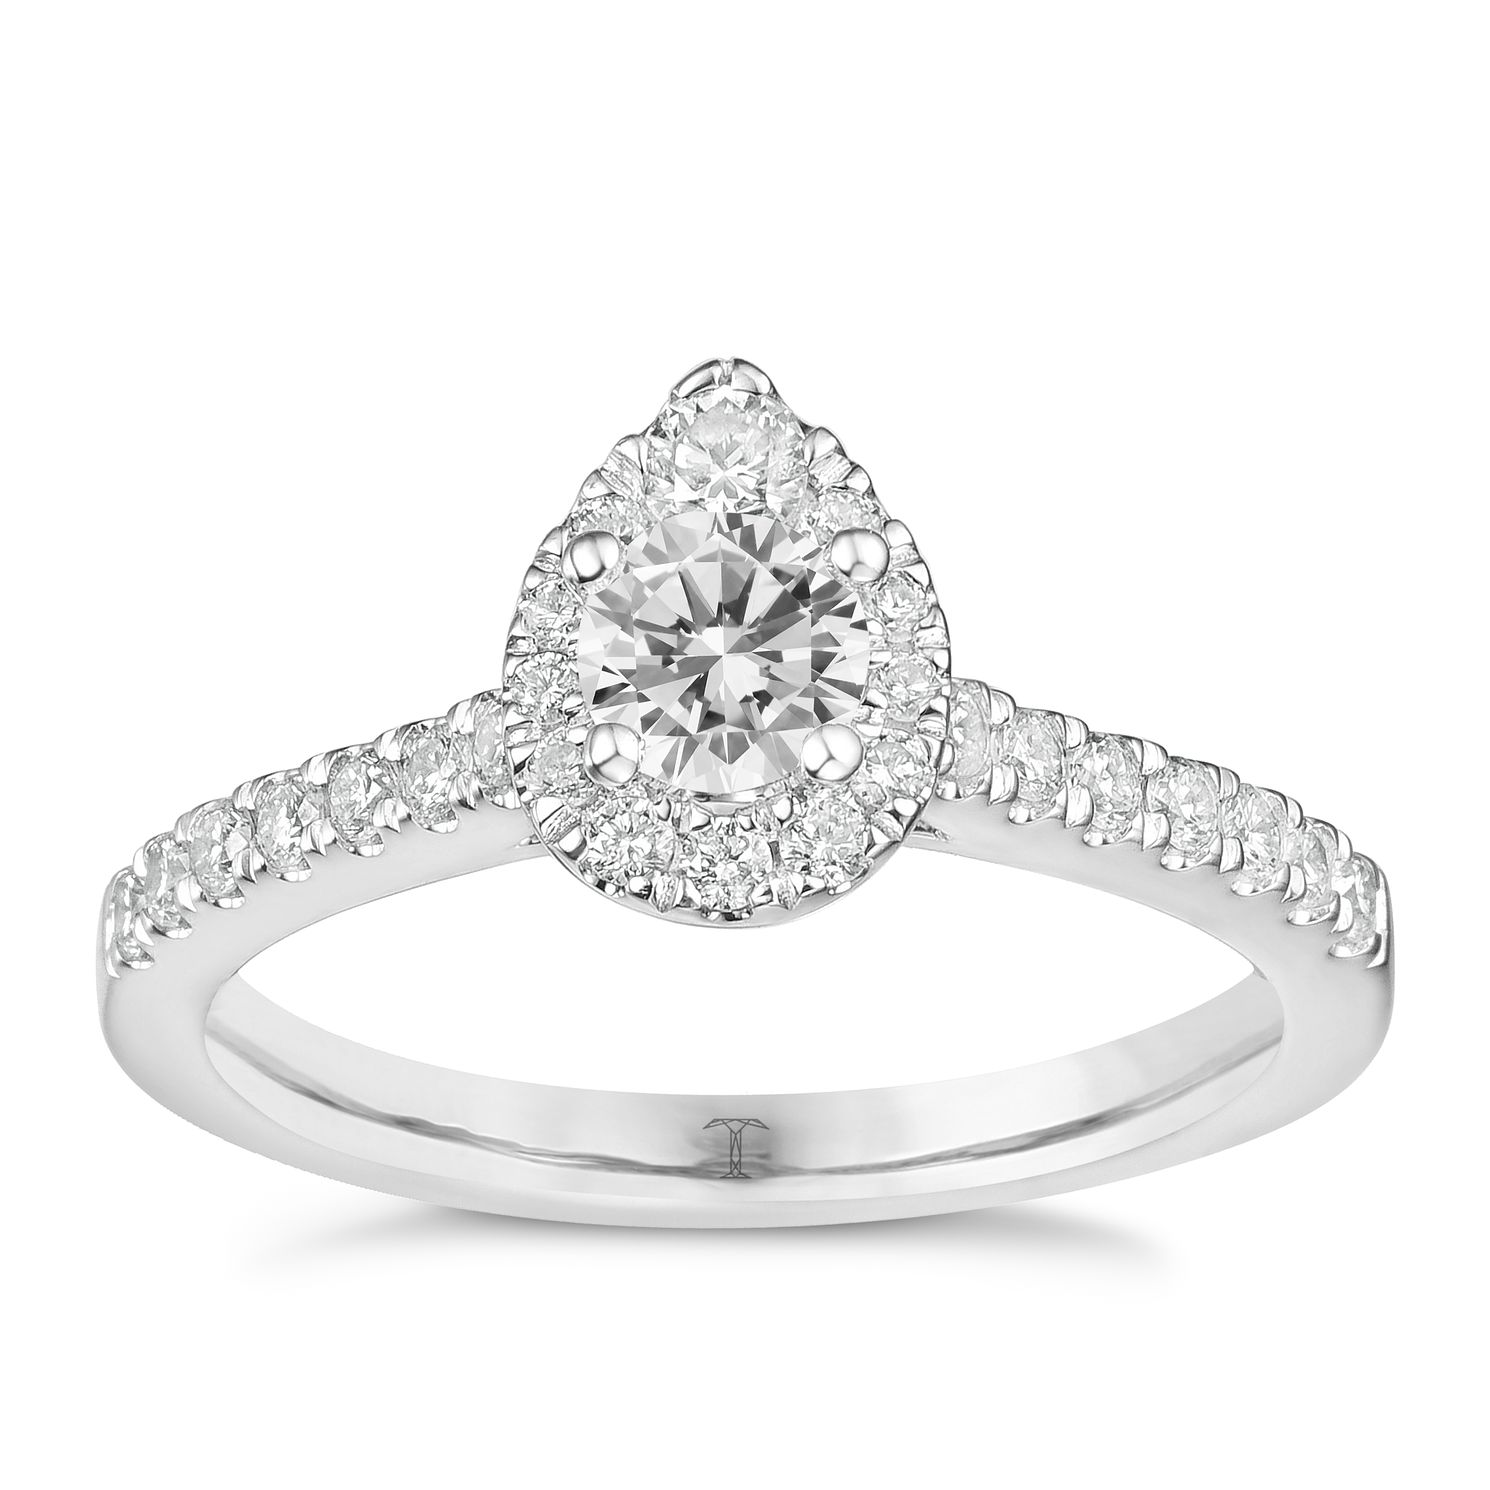 Tolkowsky 18ct White Gold 3/4ct Pear Halo Diamond Ring - Product number 8361304